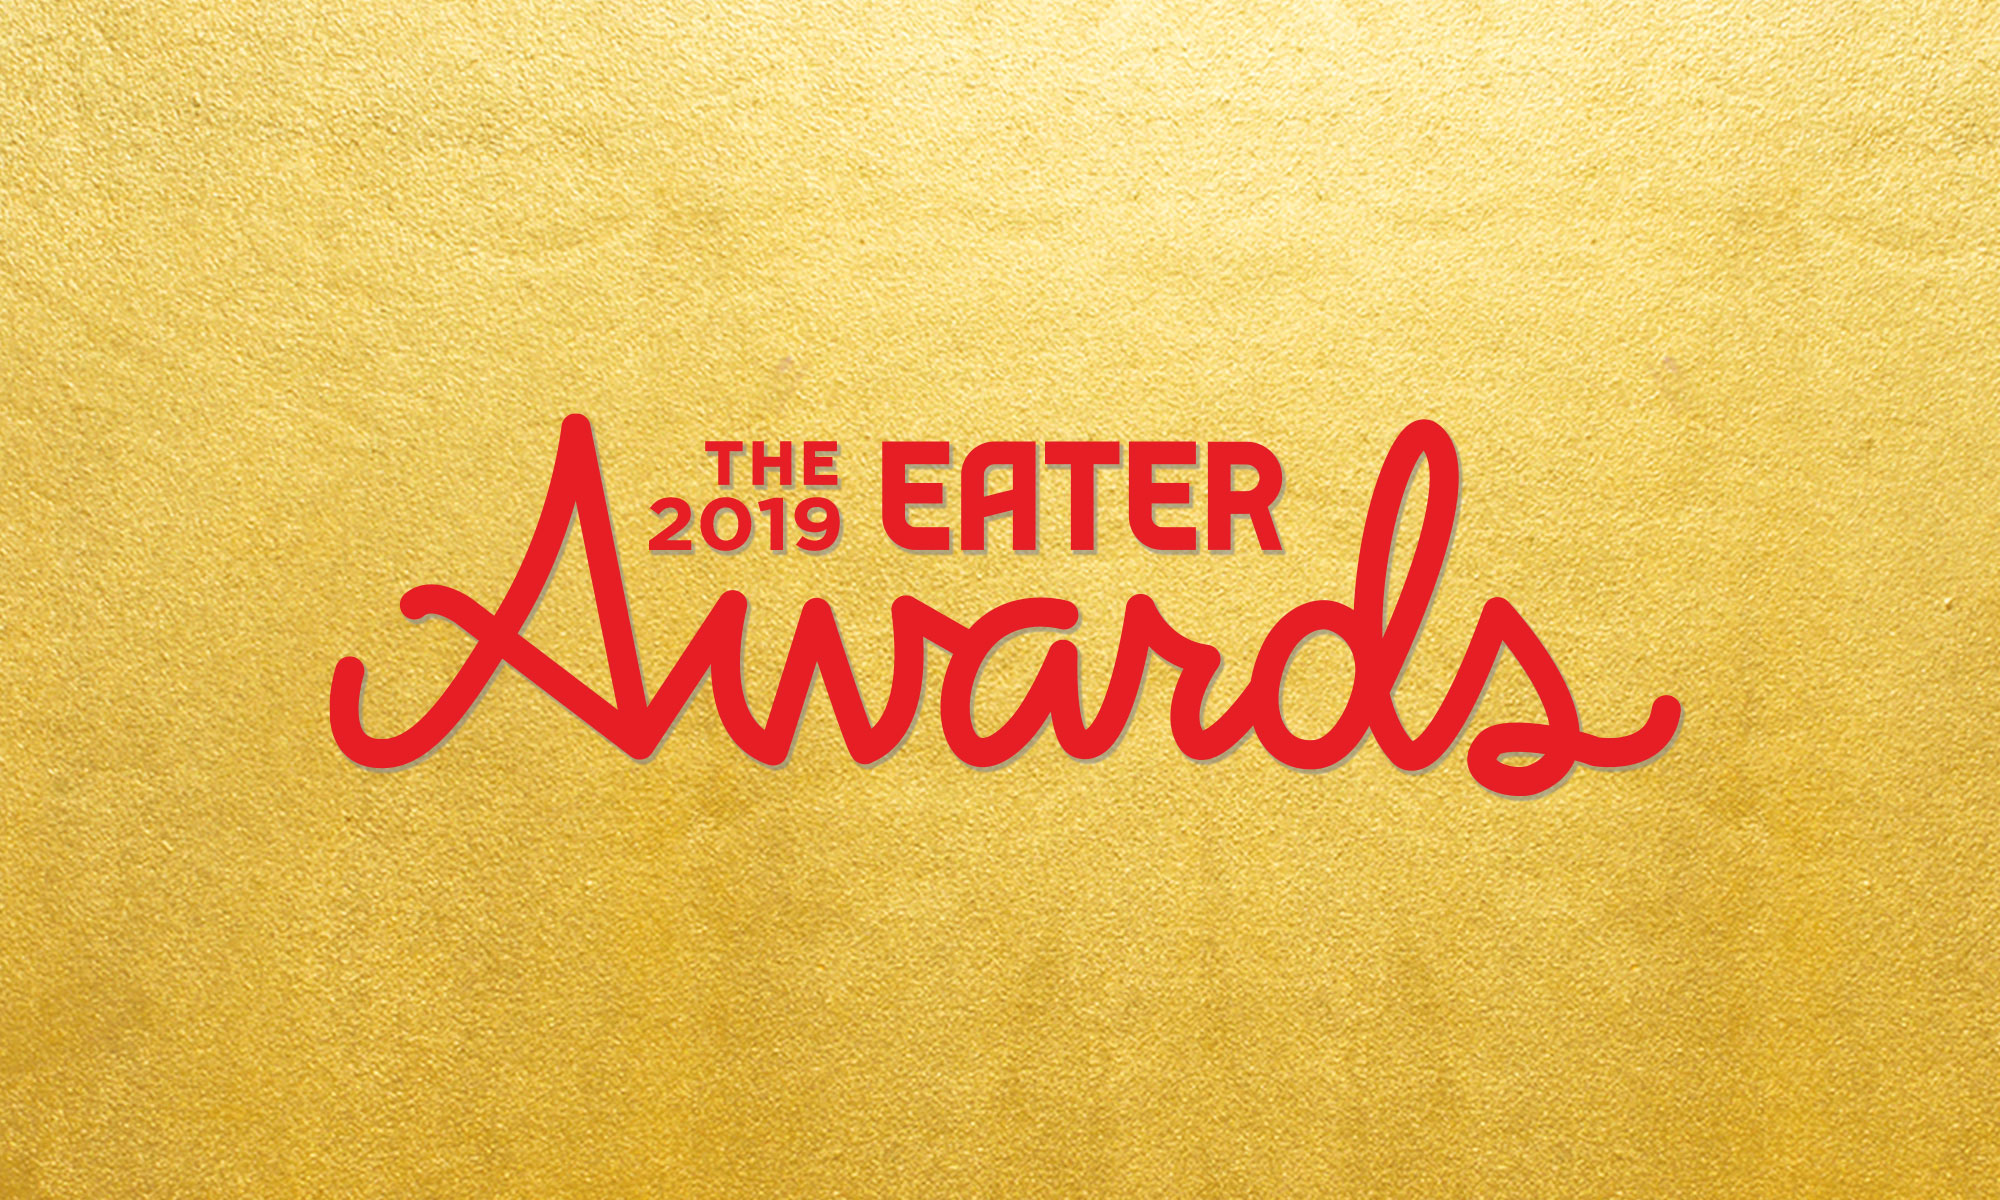 Eater Awards 2019: Here Are the Nashville Finalists